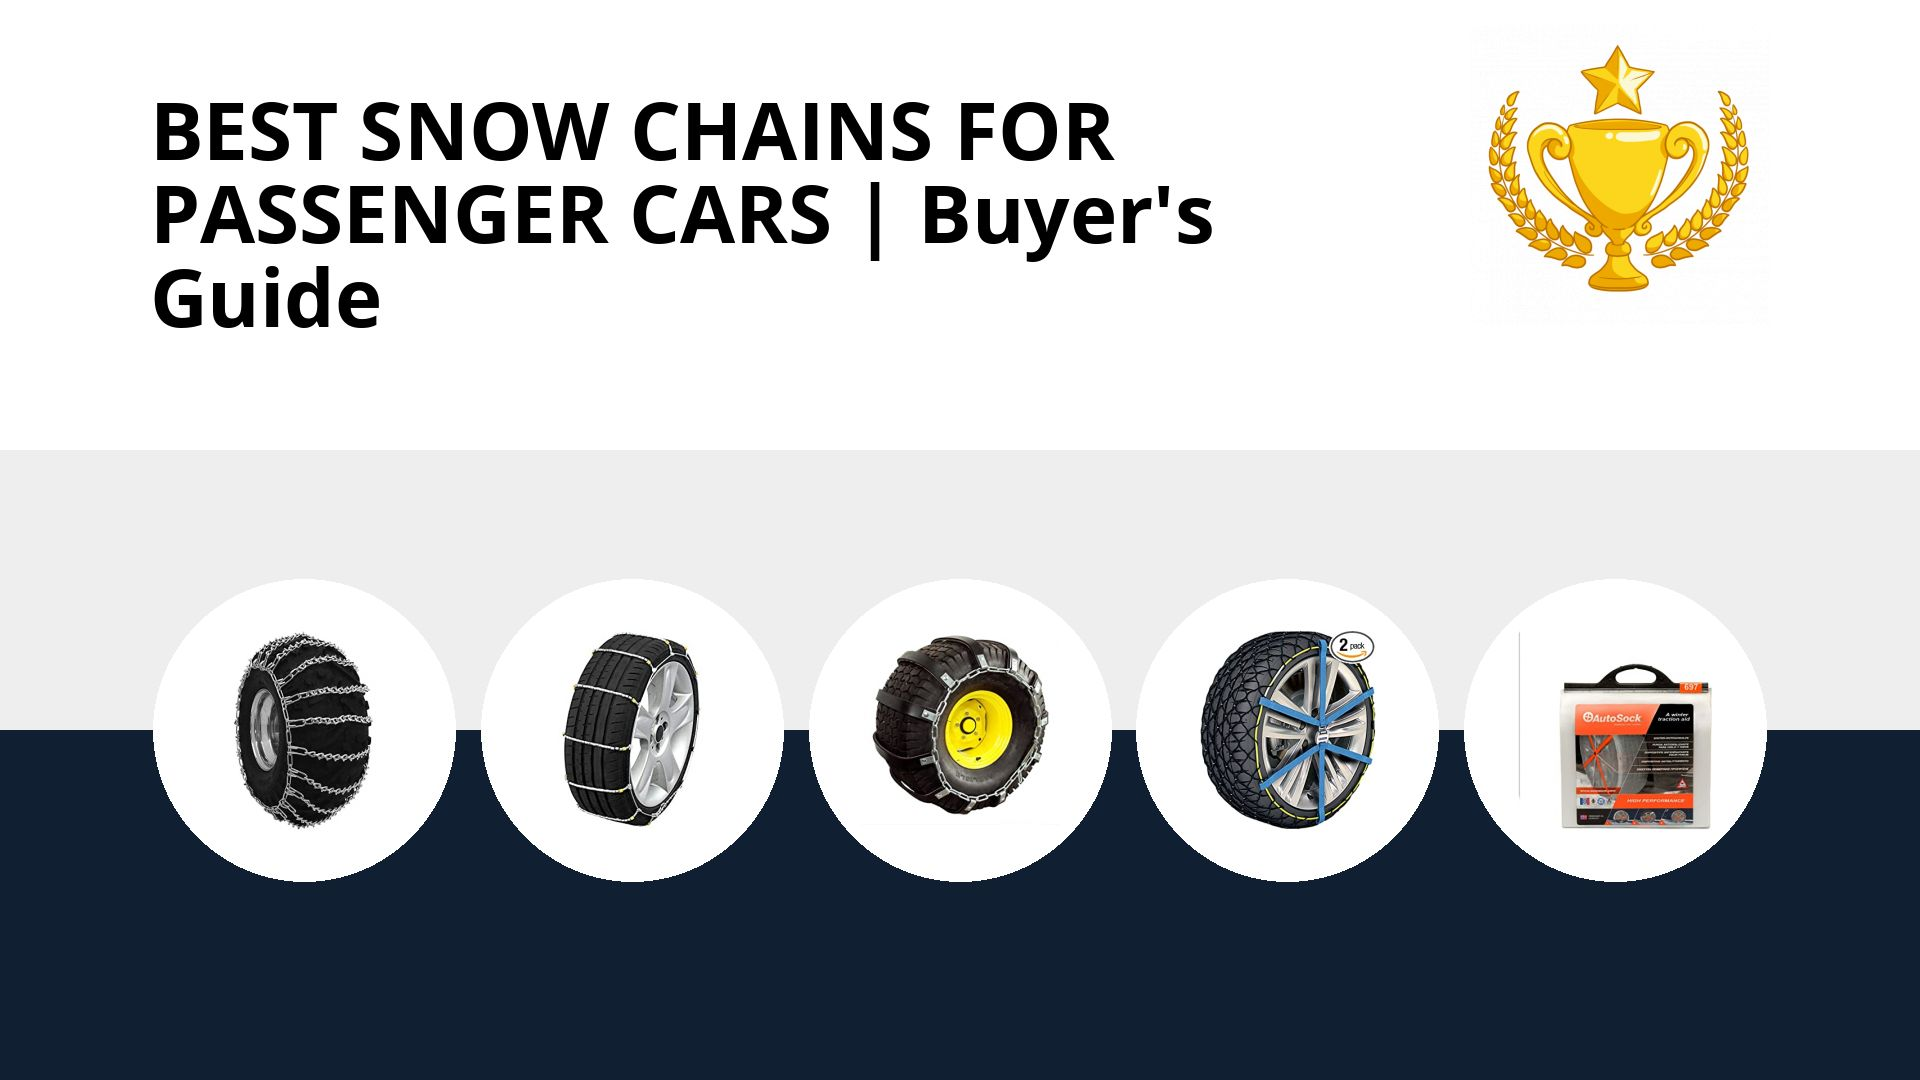 Best Snow Chains For Passenger Cars: image